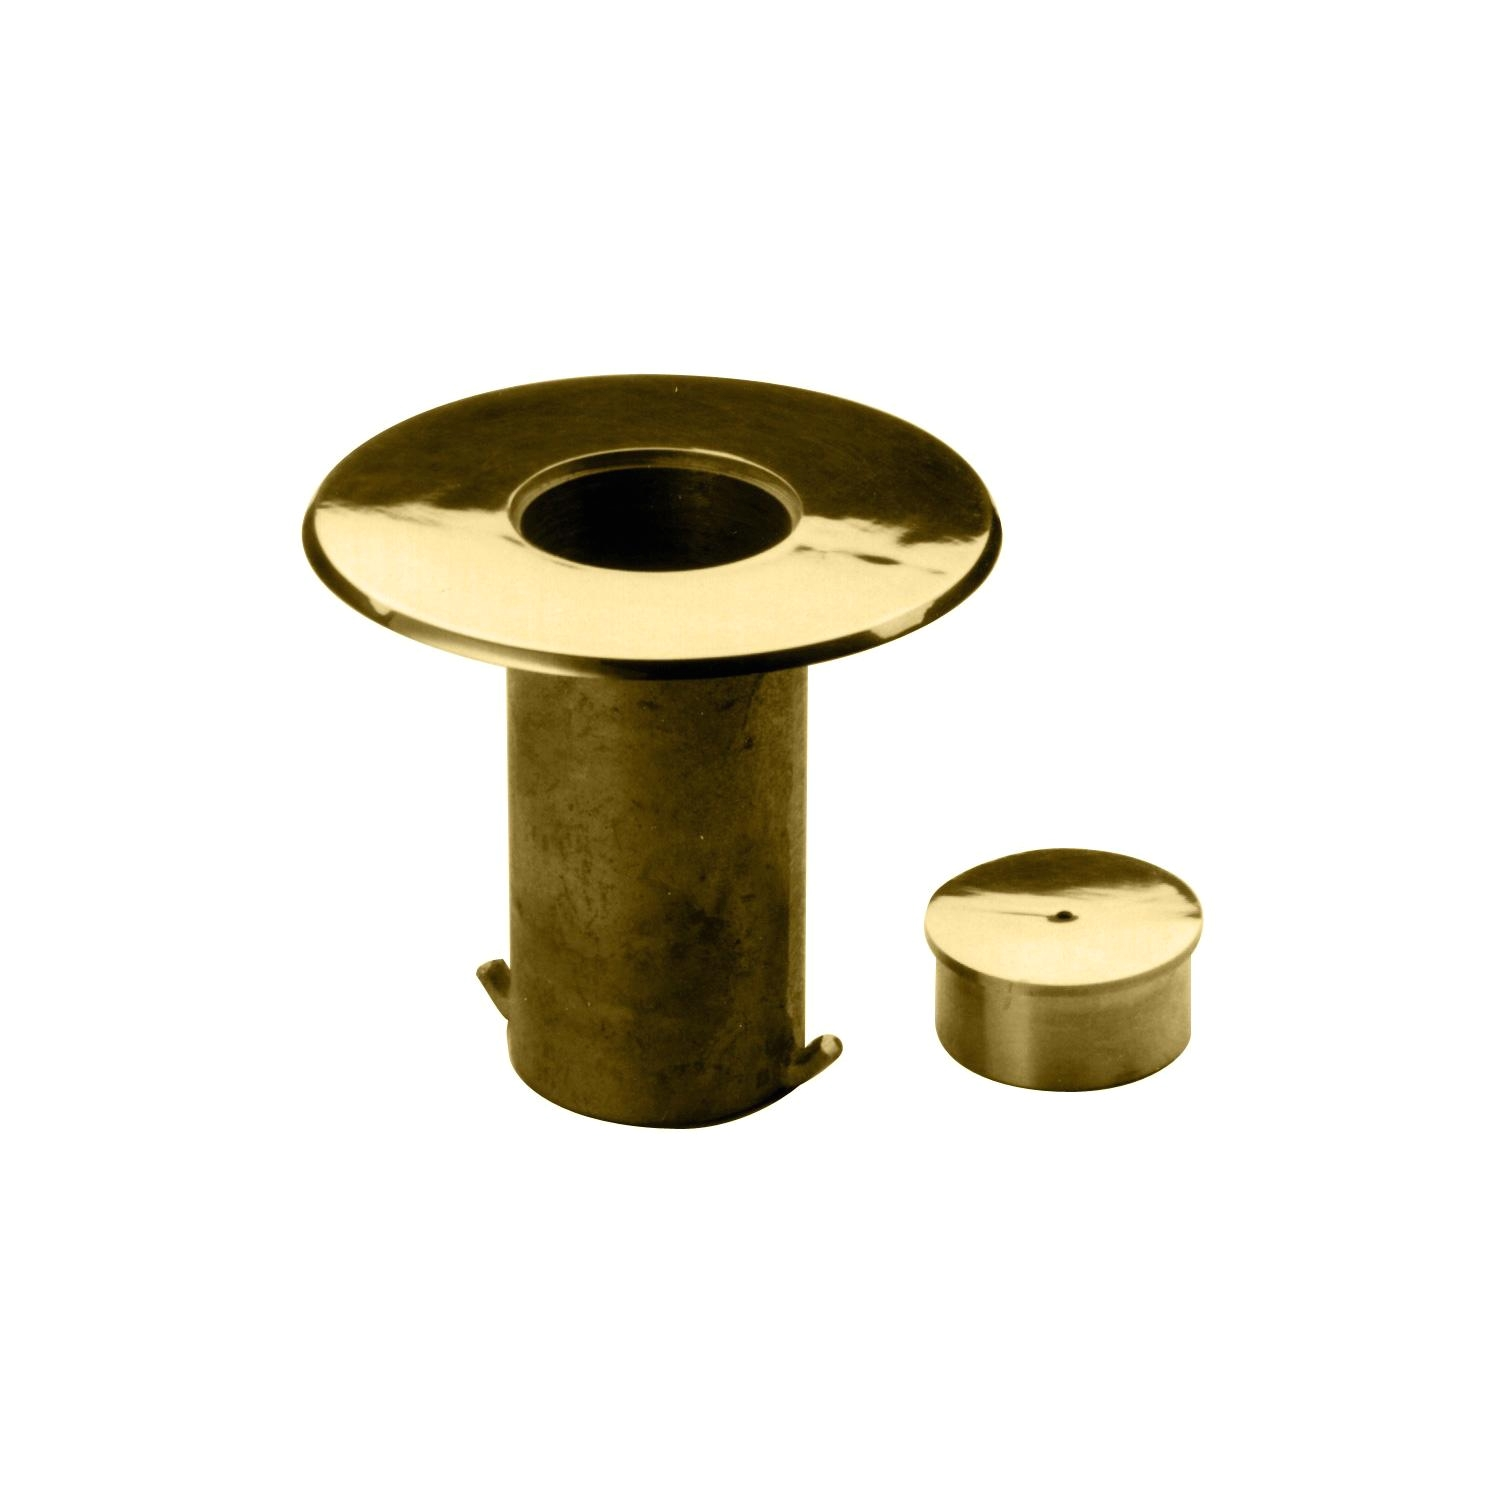 Brass Floor Single Outlet Cover Floor socket with Cap 2 Od 545 Architectural Railings Flanges